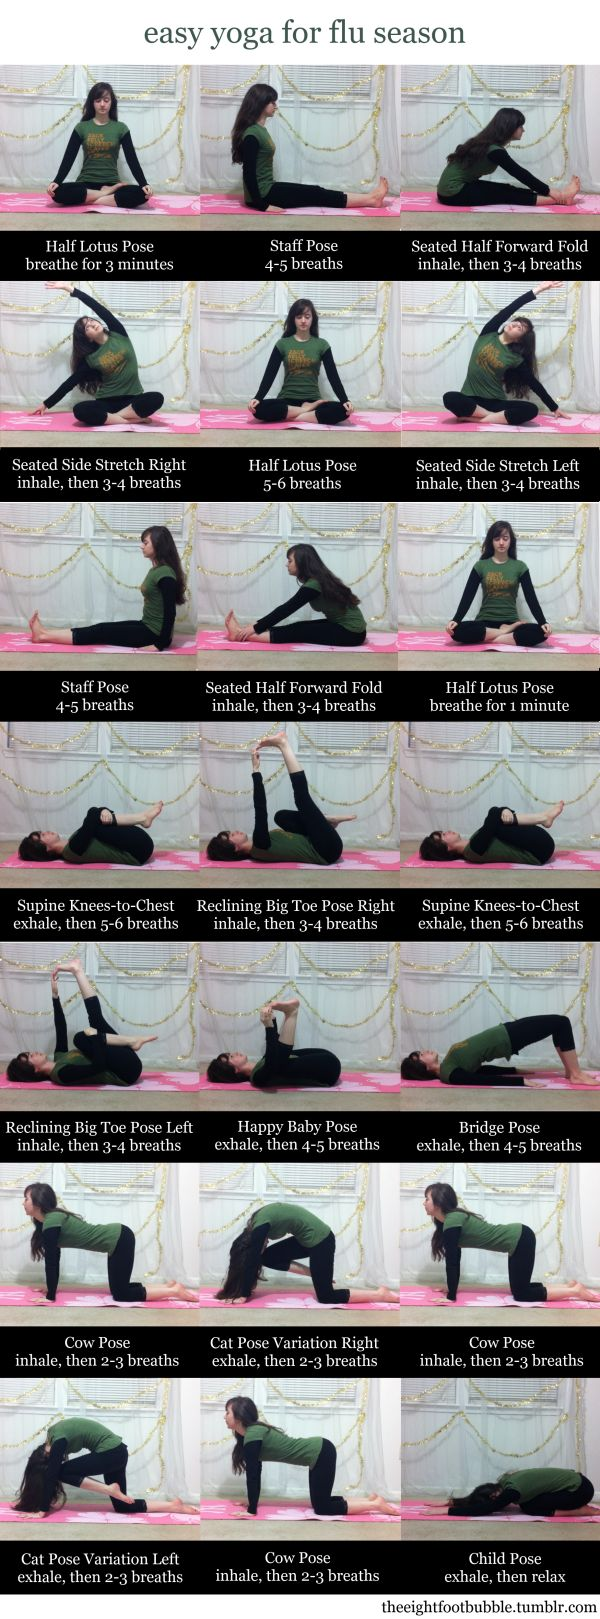 yoga for flu season